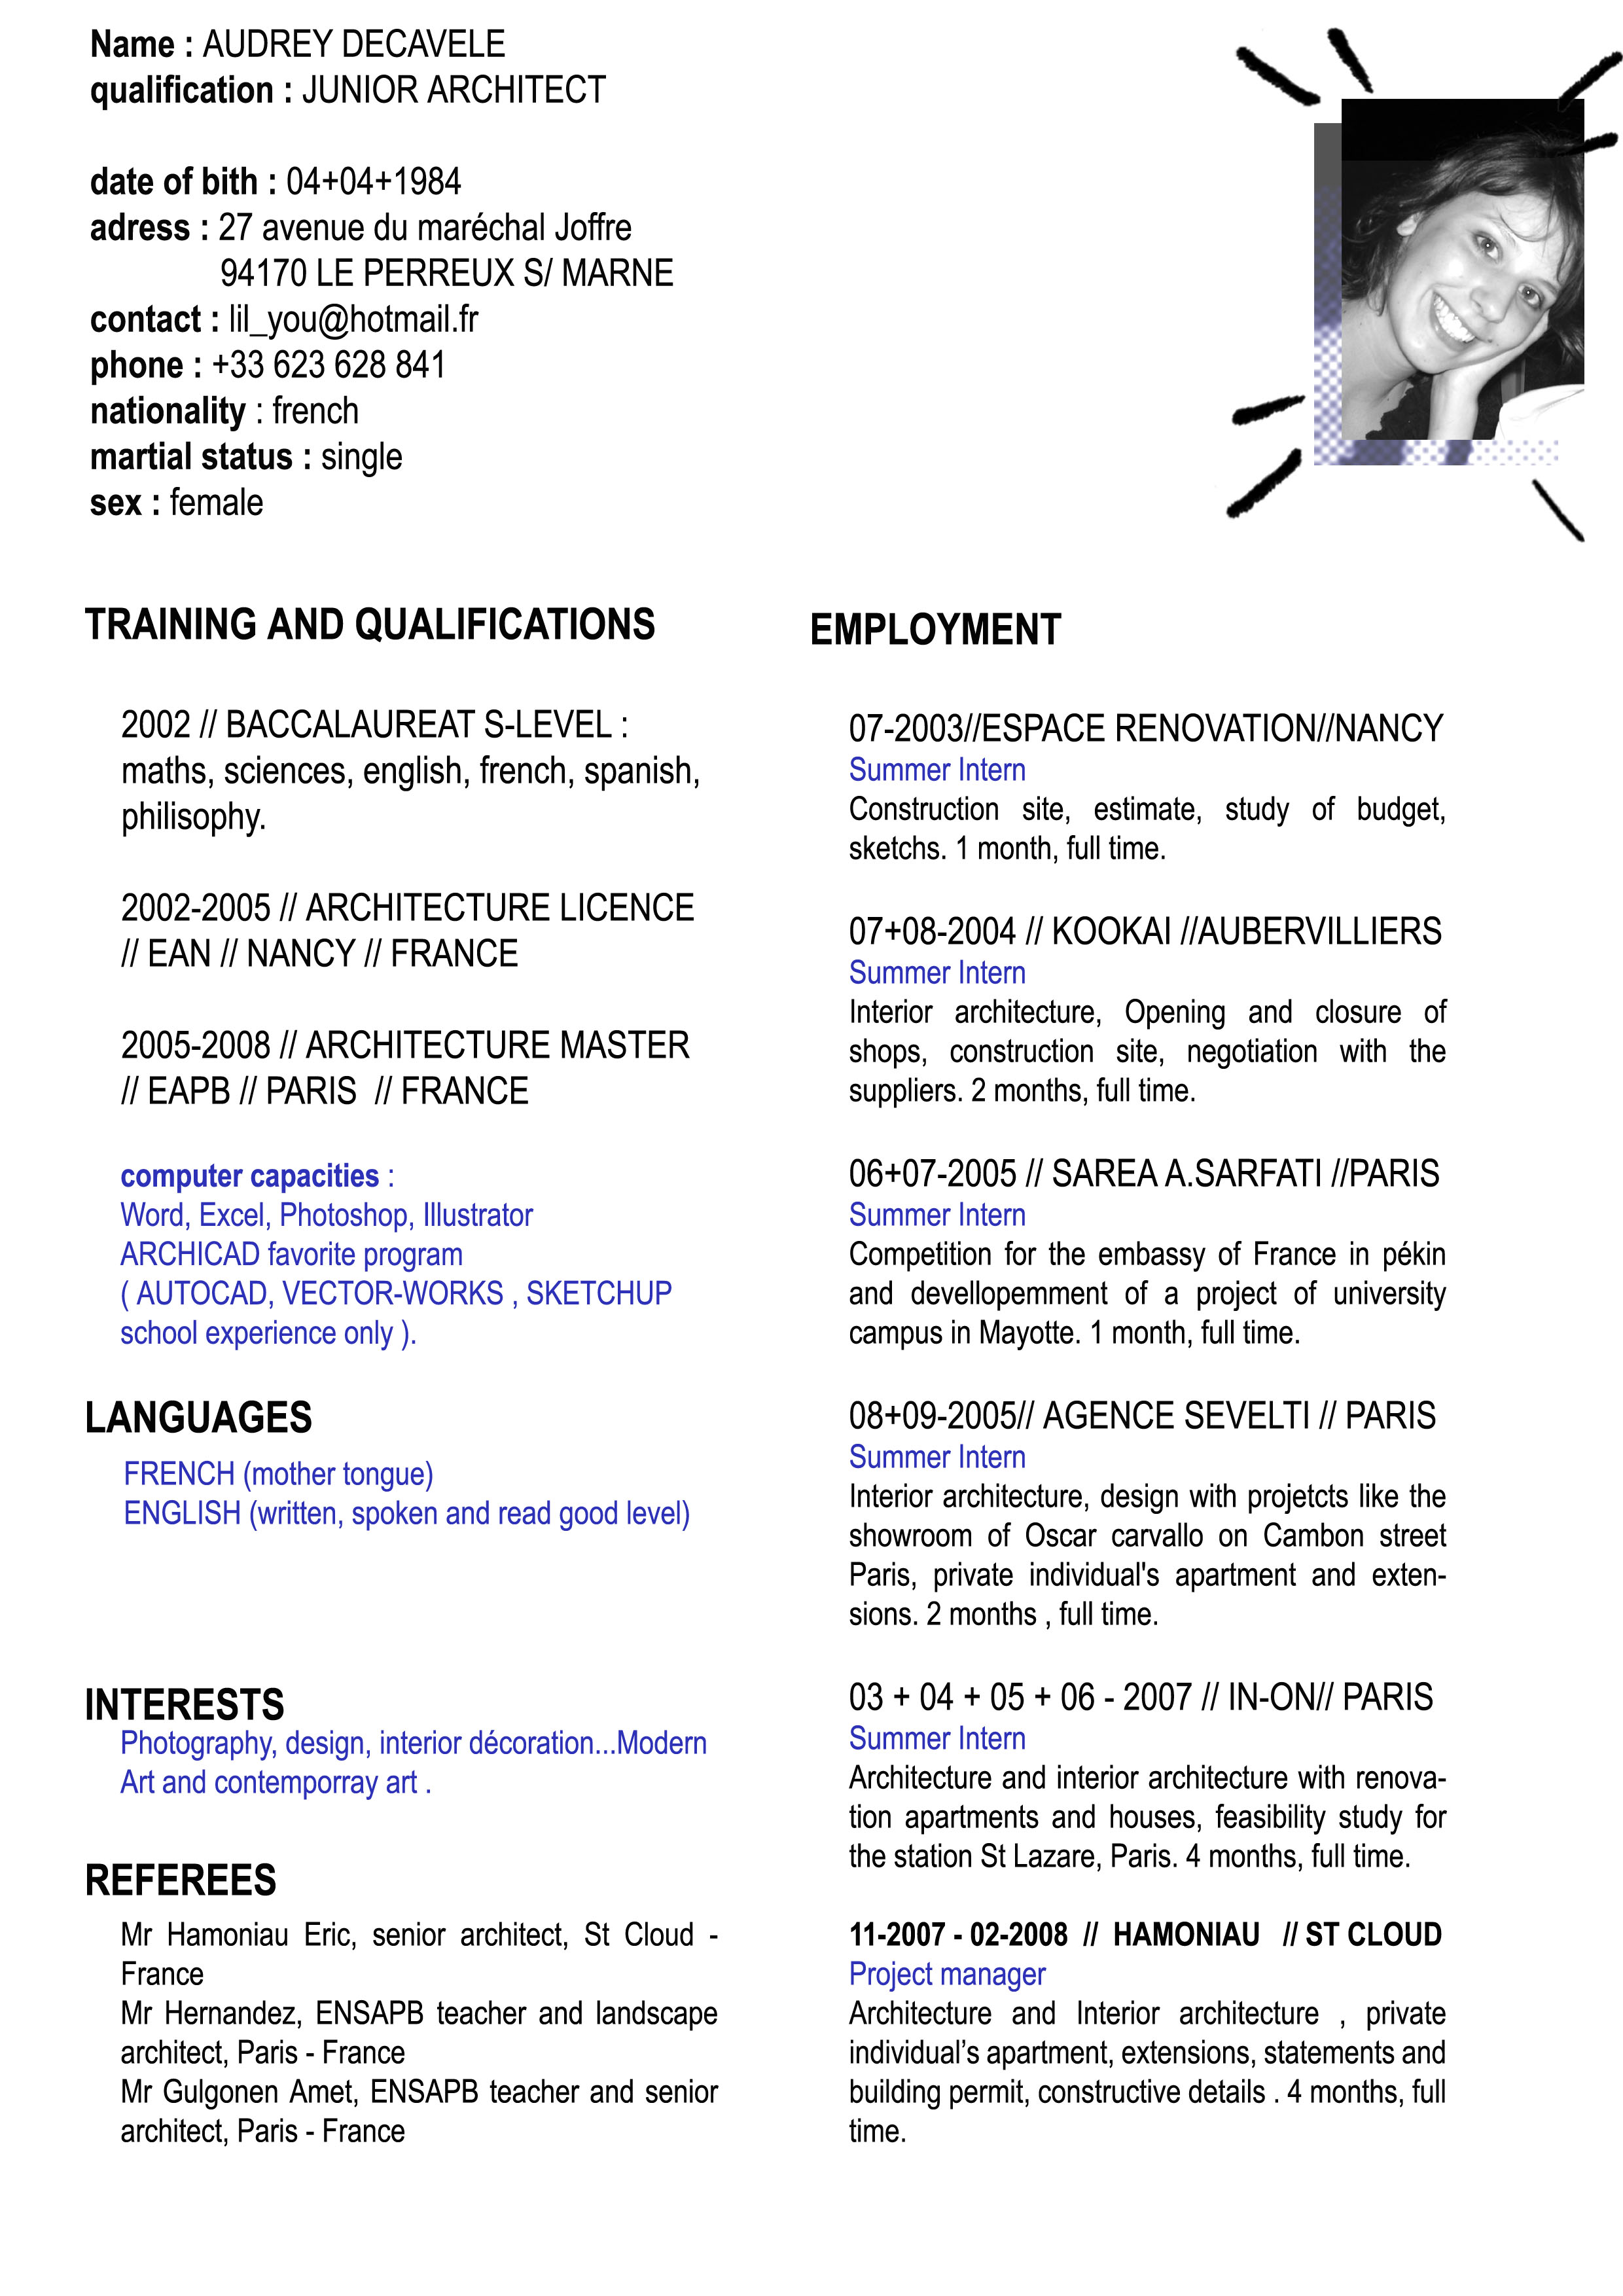 submit your resume site resume on line free resume search for